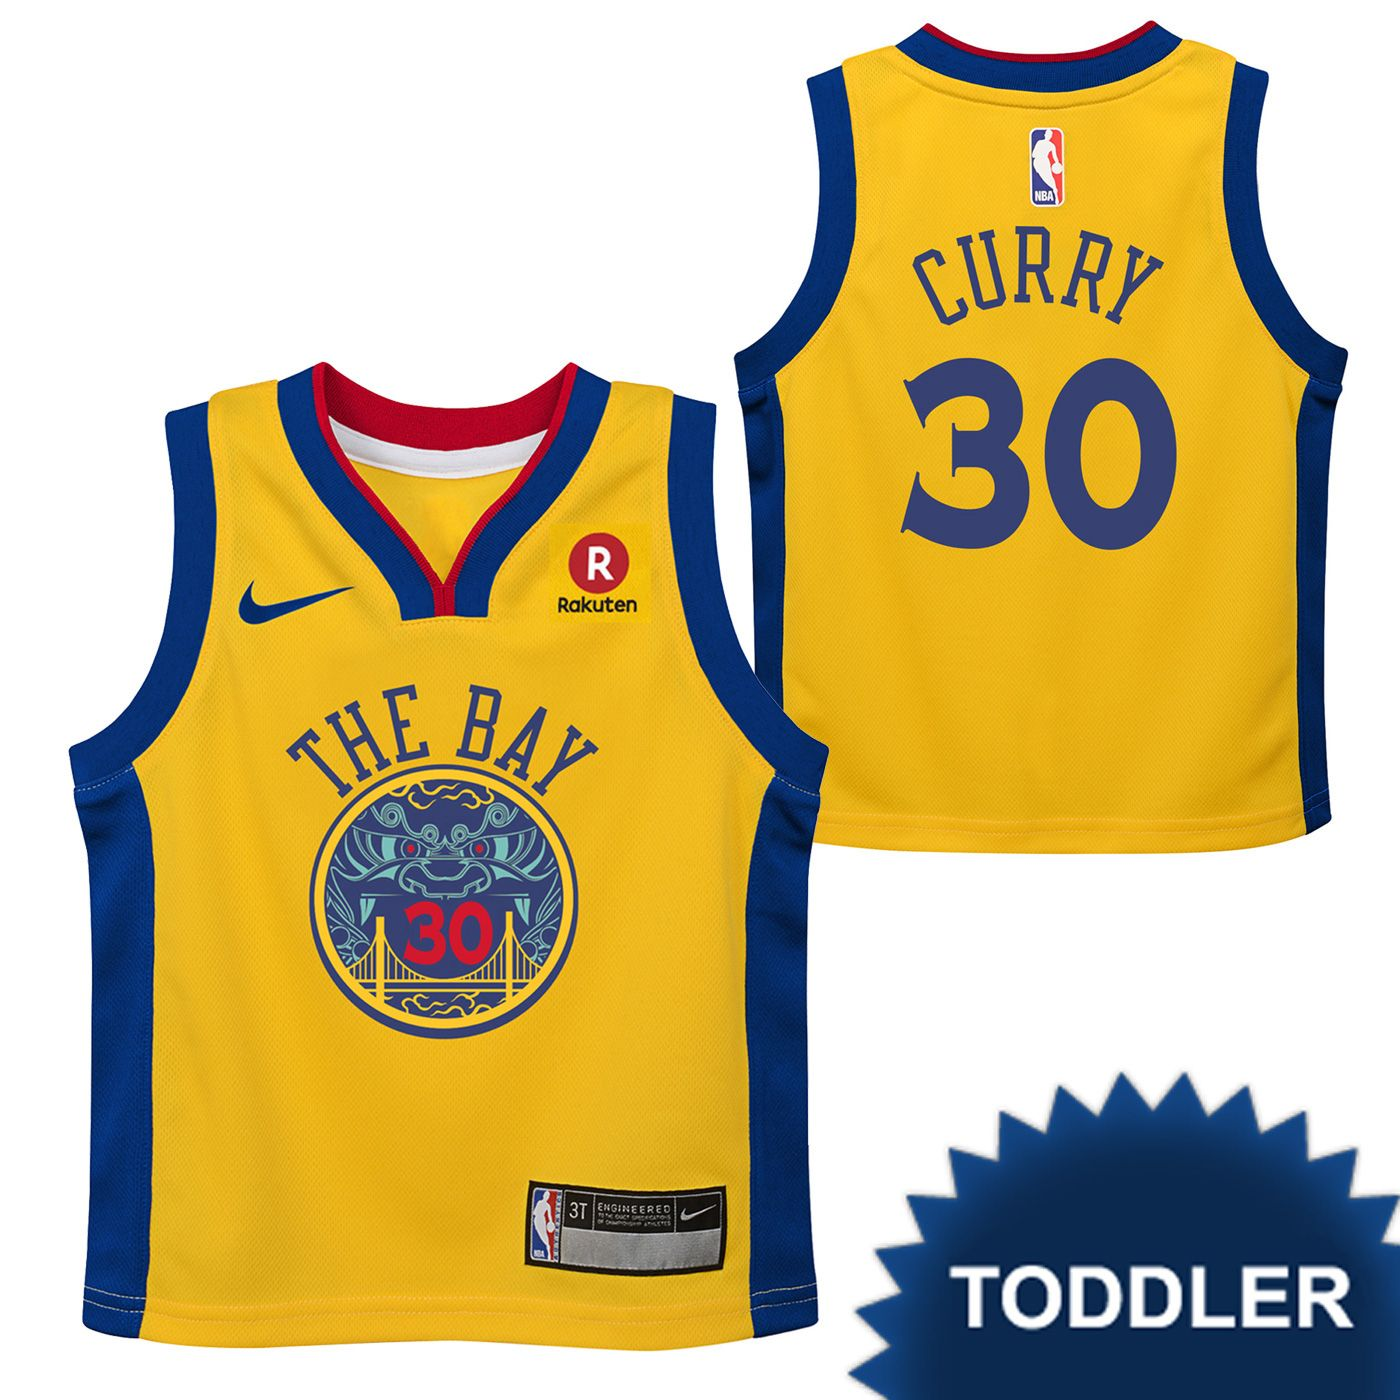 3eaa62907b6 Golden State Warriors Nike Dri-FIT Toddler Chinese Heritage 'The Bay'  Stephen Curry  30 Replica Jersey - Gold